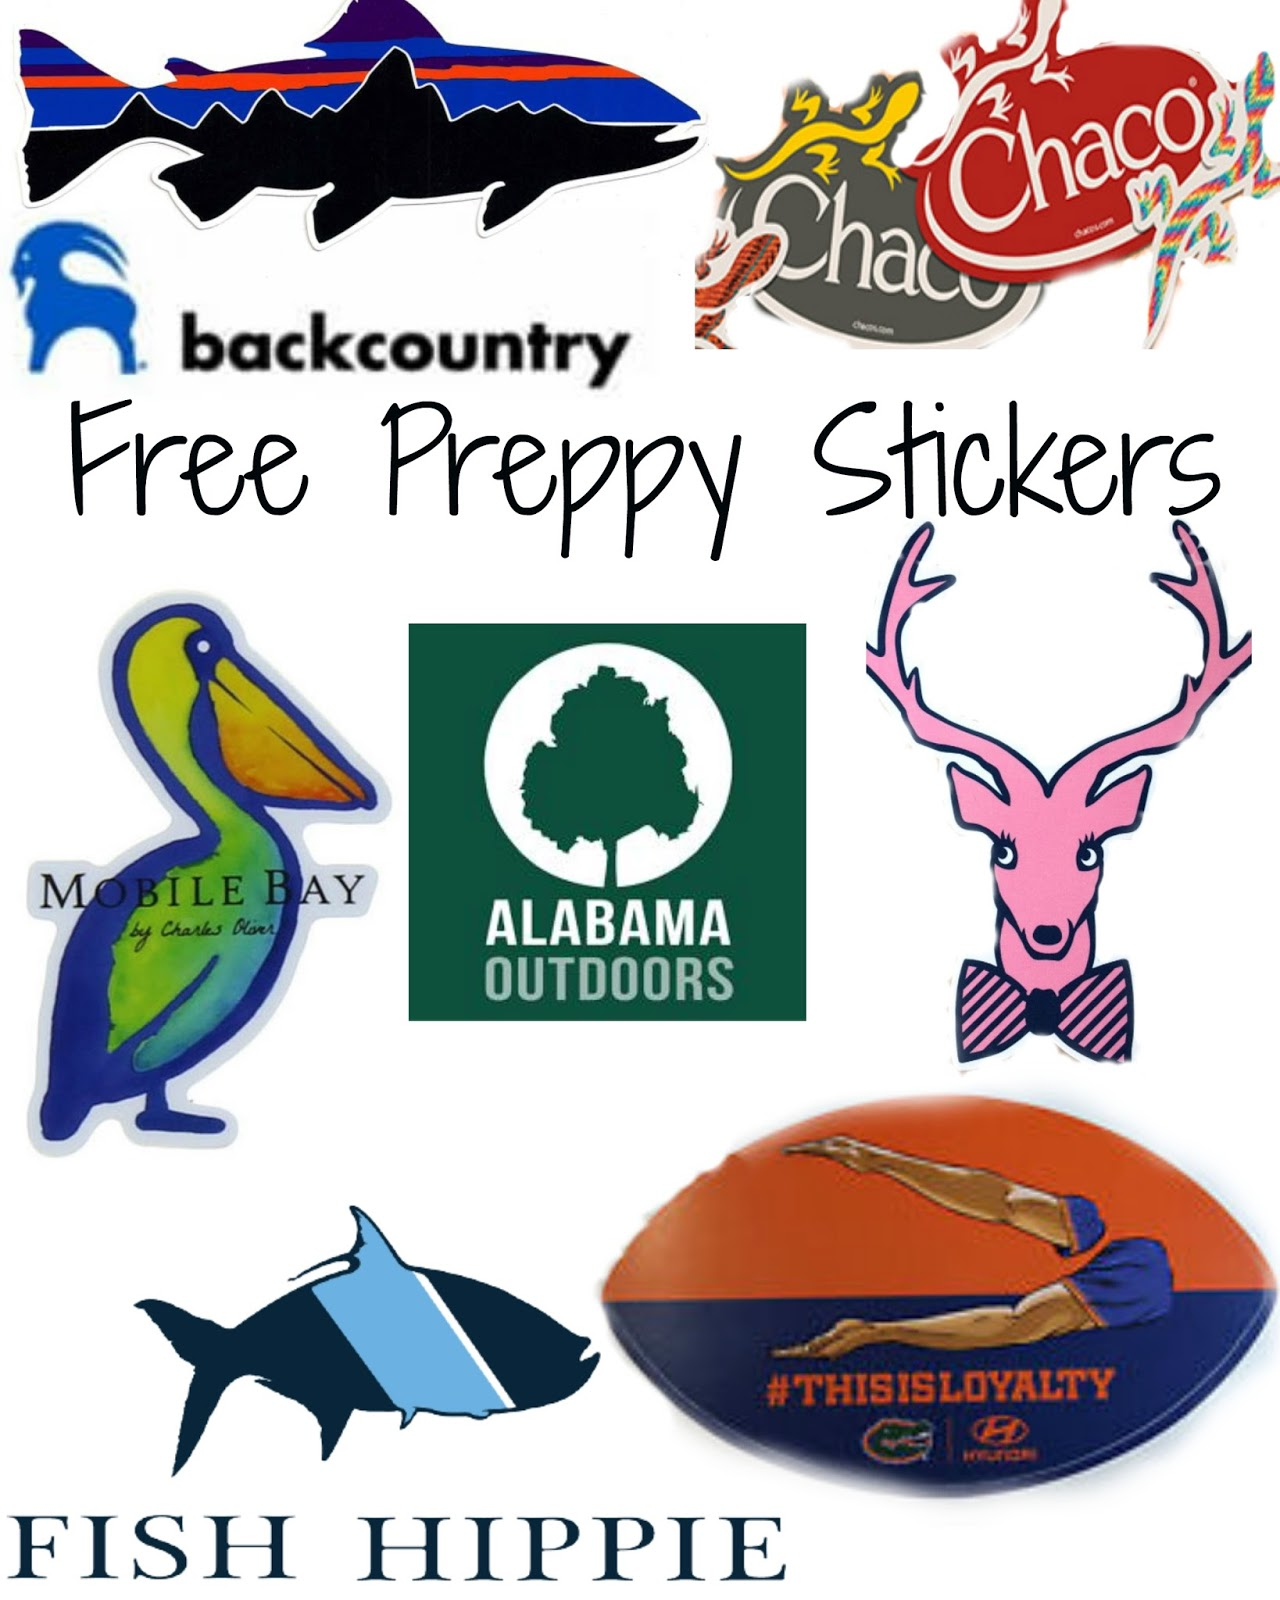 Floridian by the Grace of God: Free Preppy Stickers!